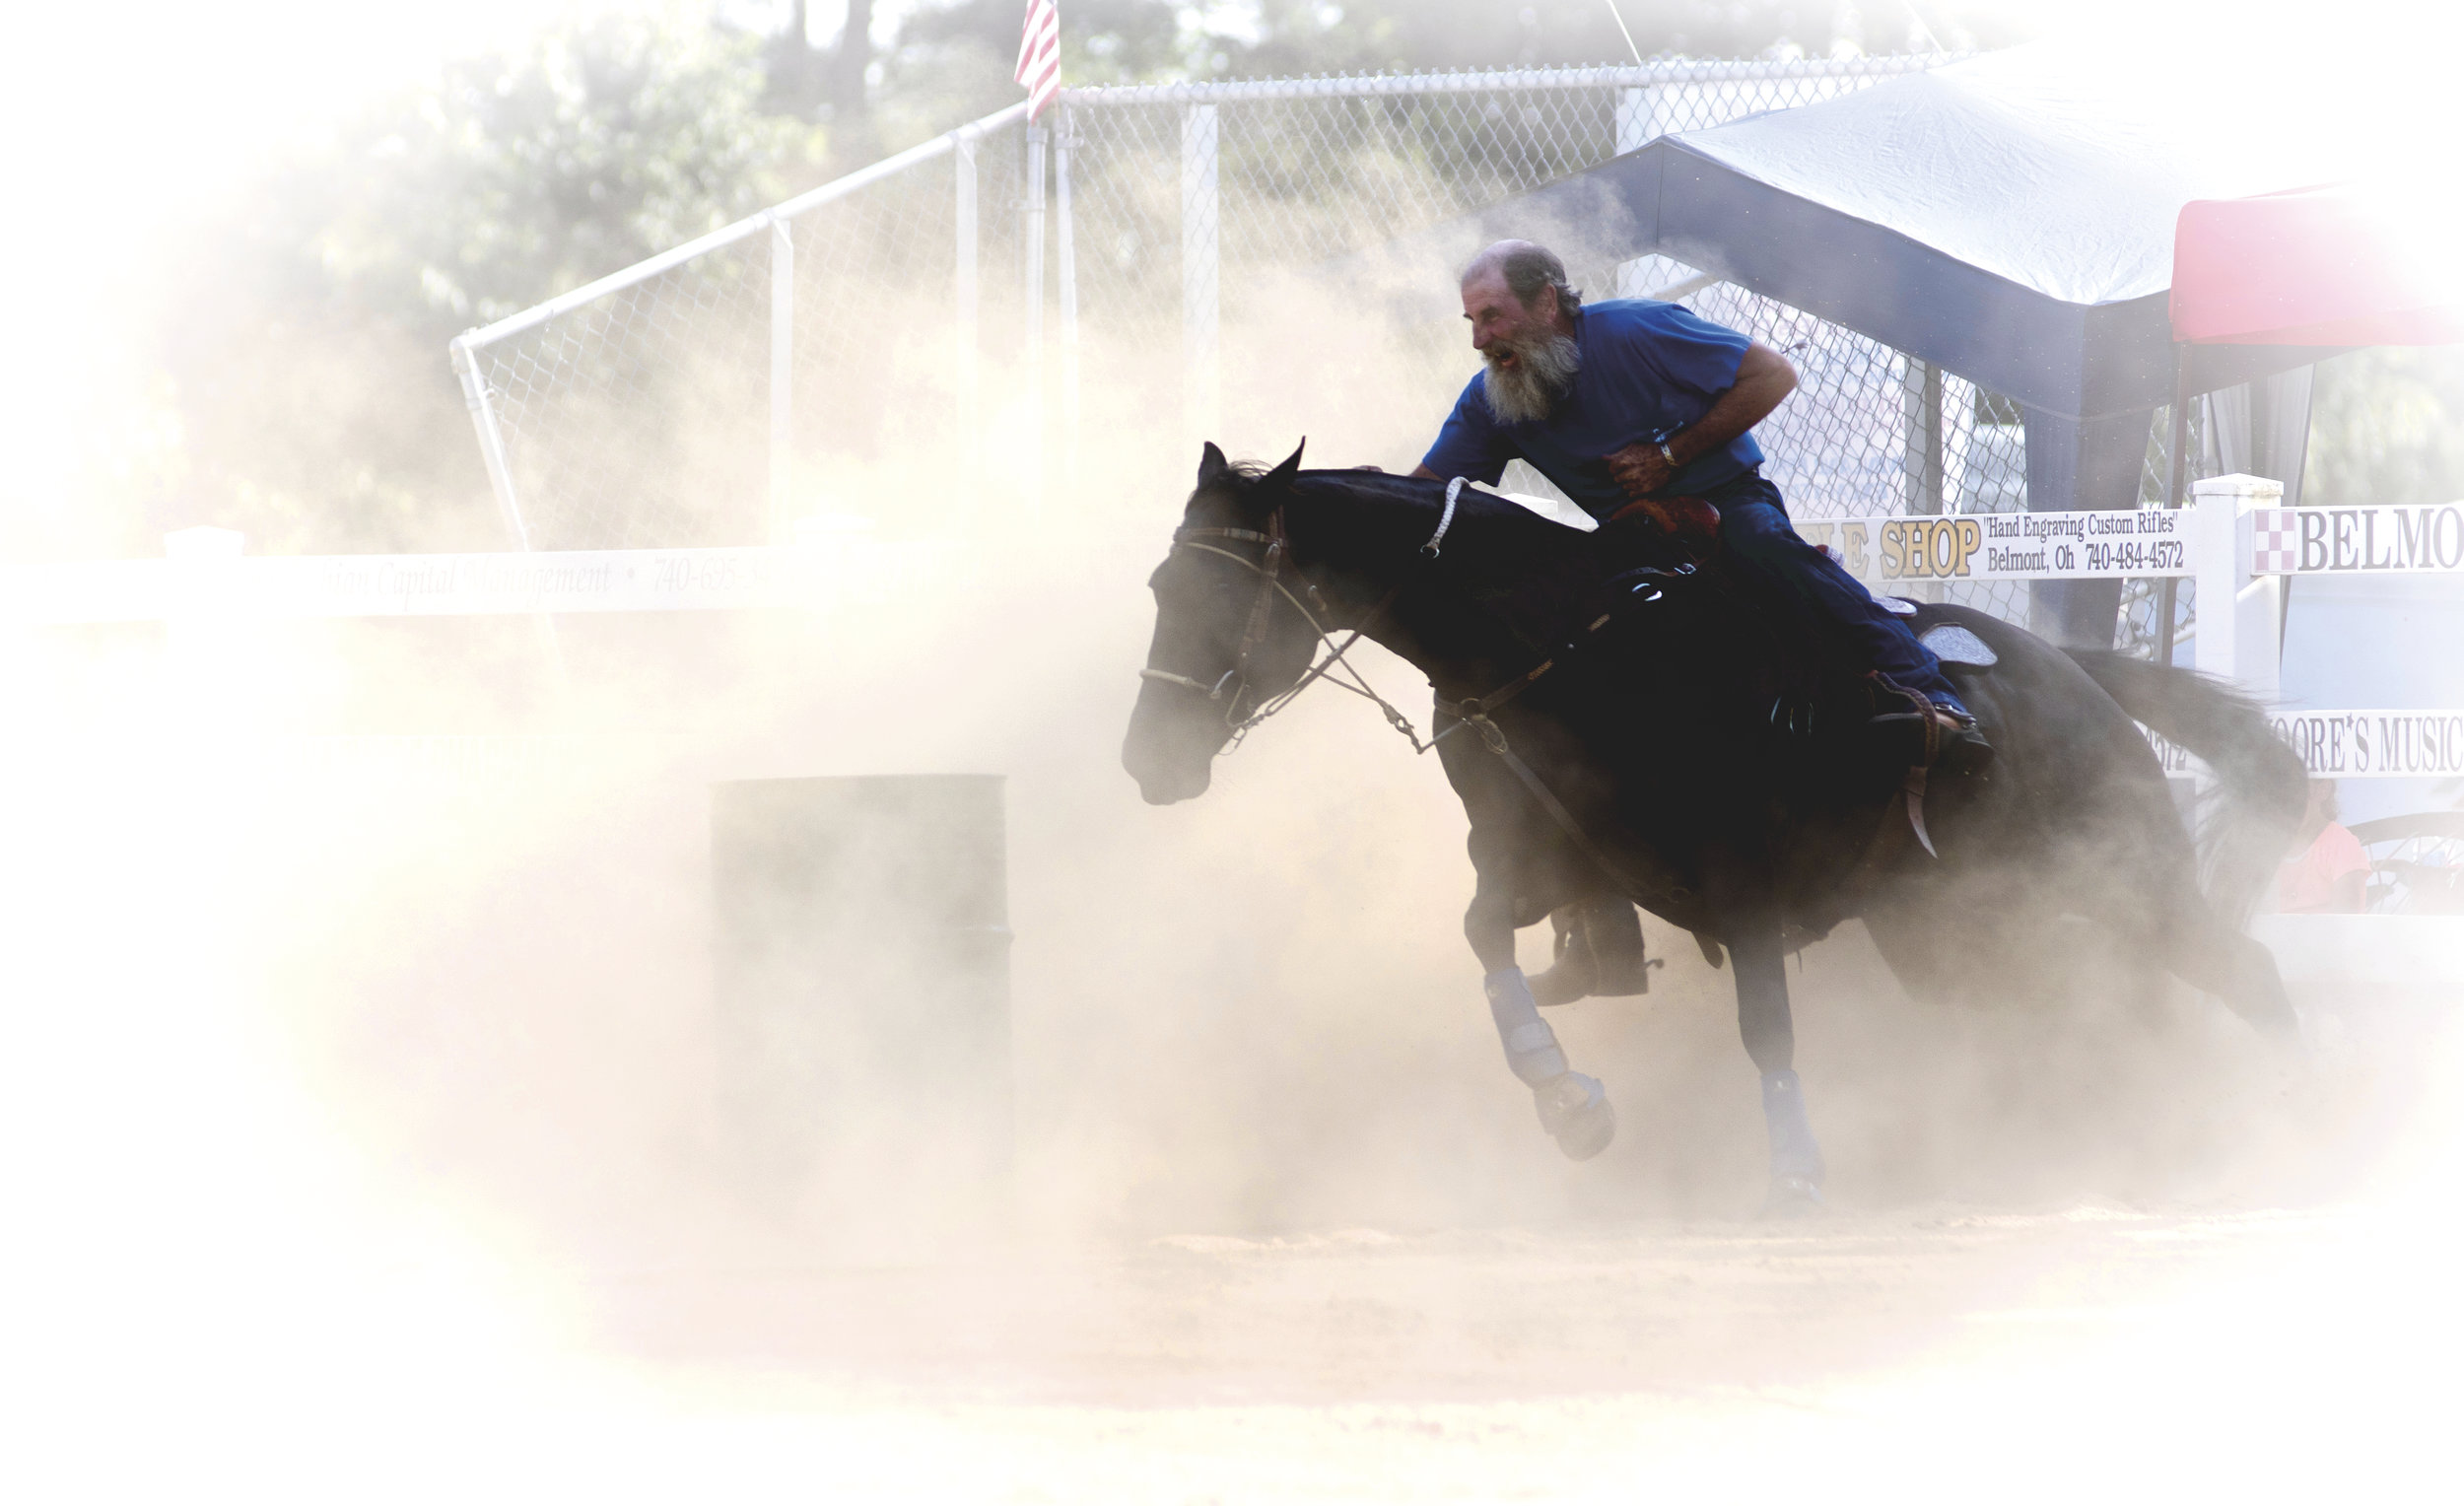 Barrel Racing event that was a giant dust bowl with high sunny the entire time.